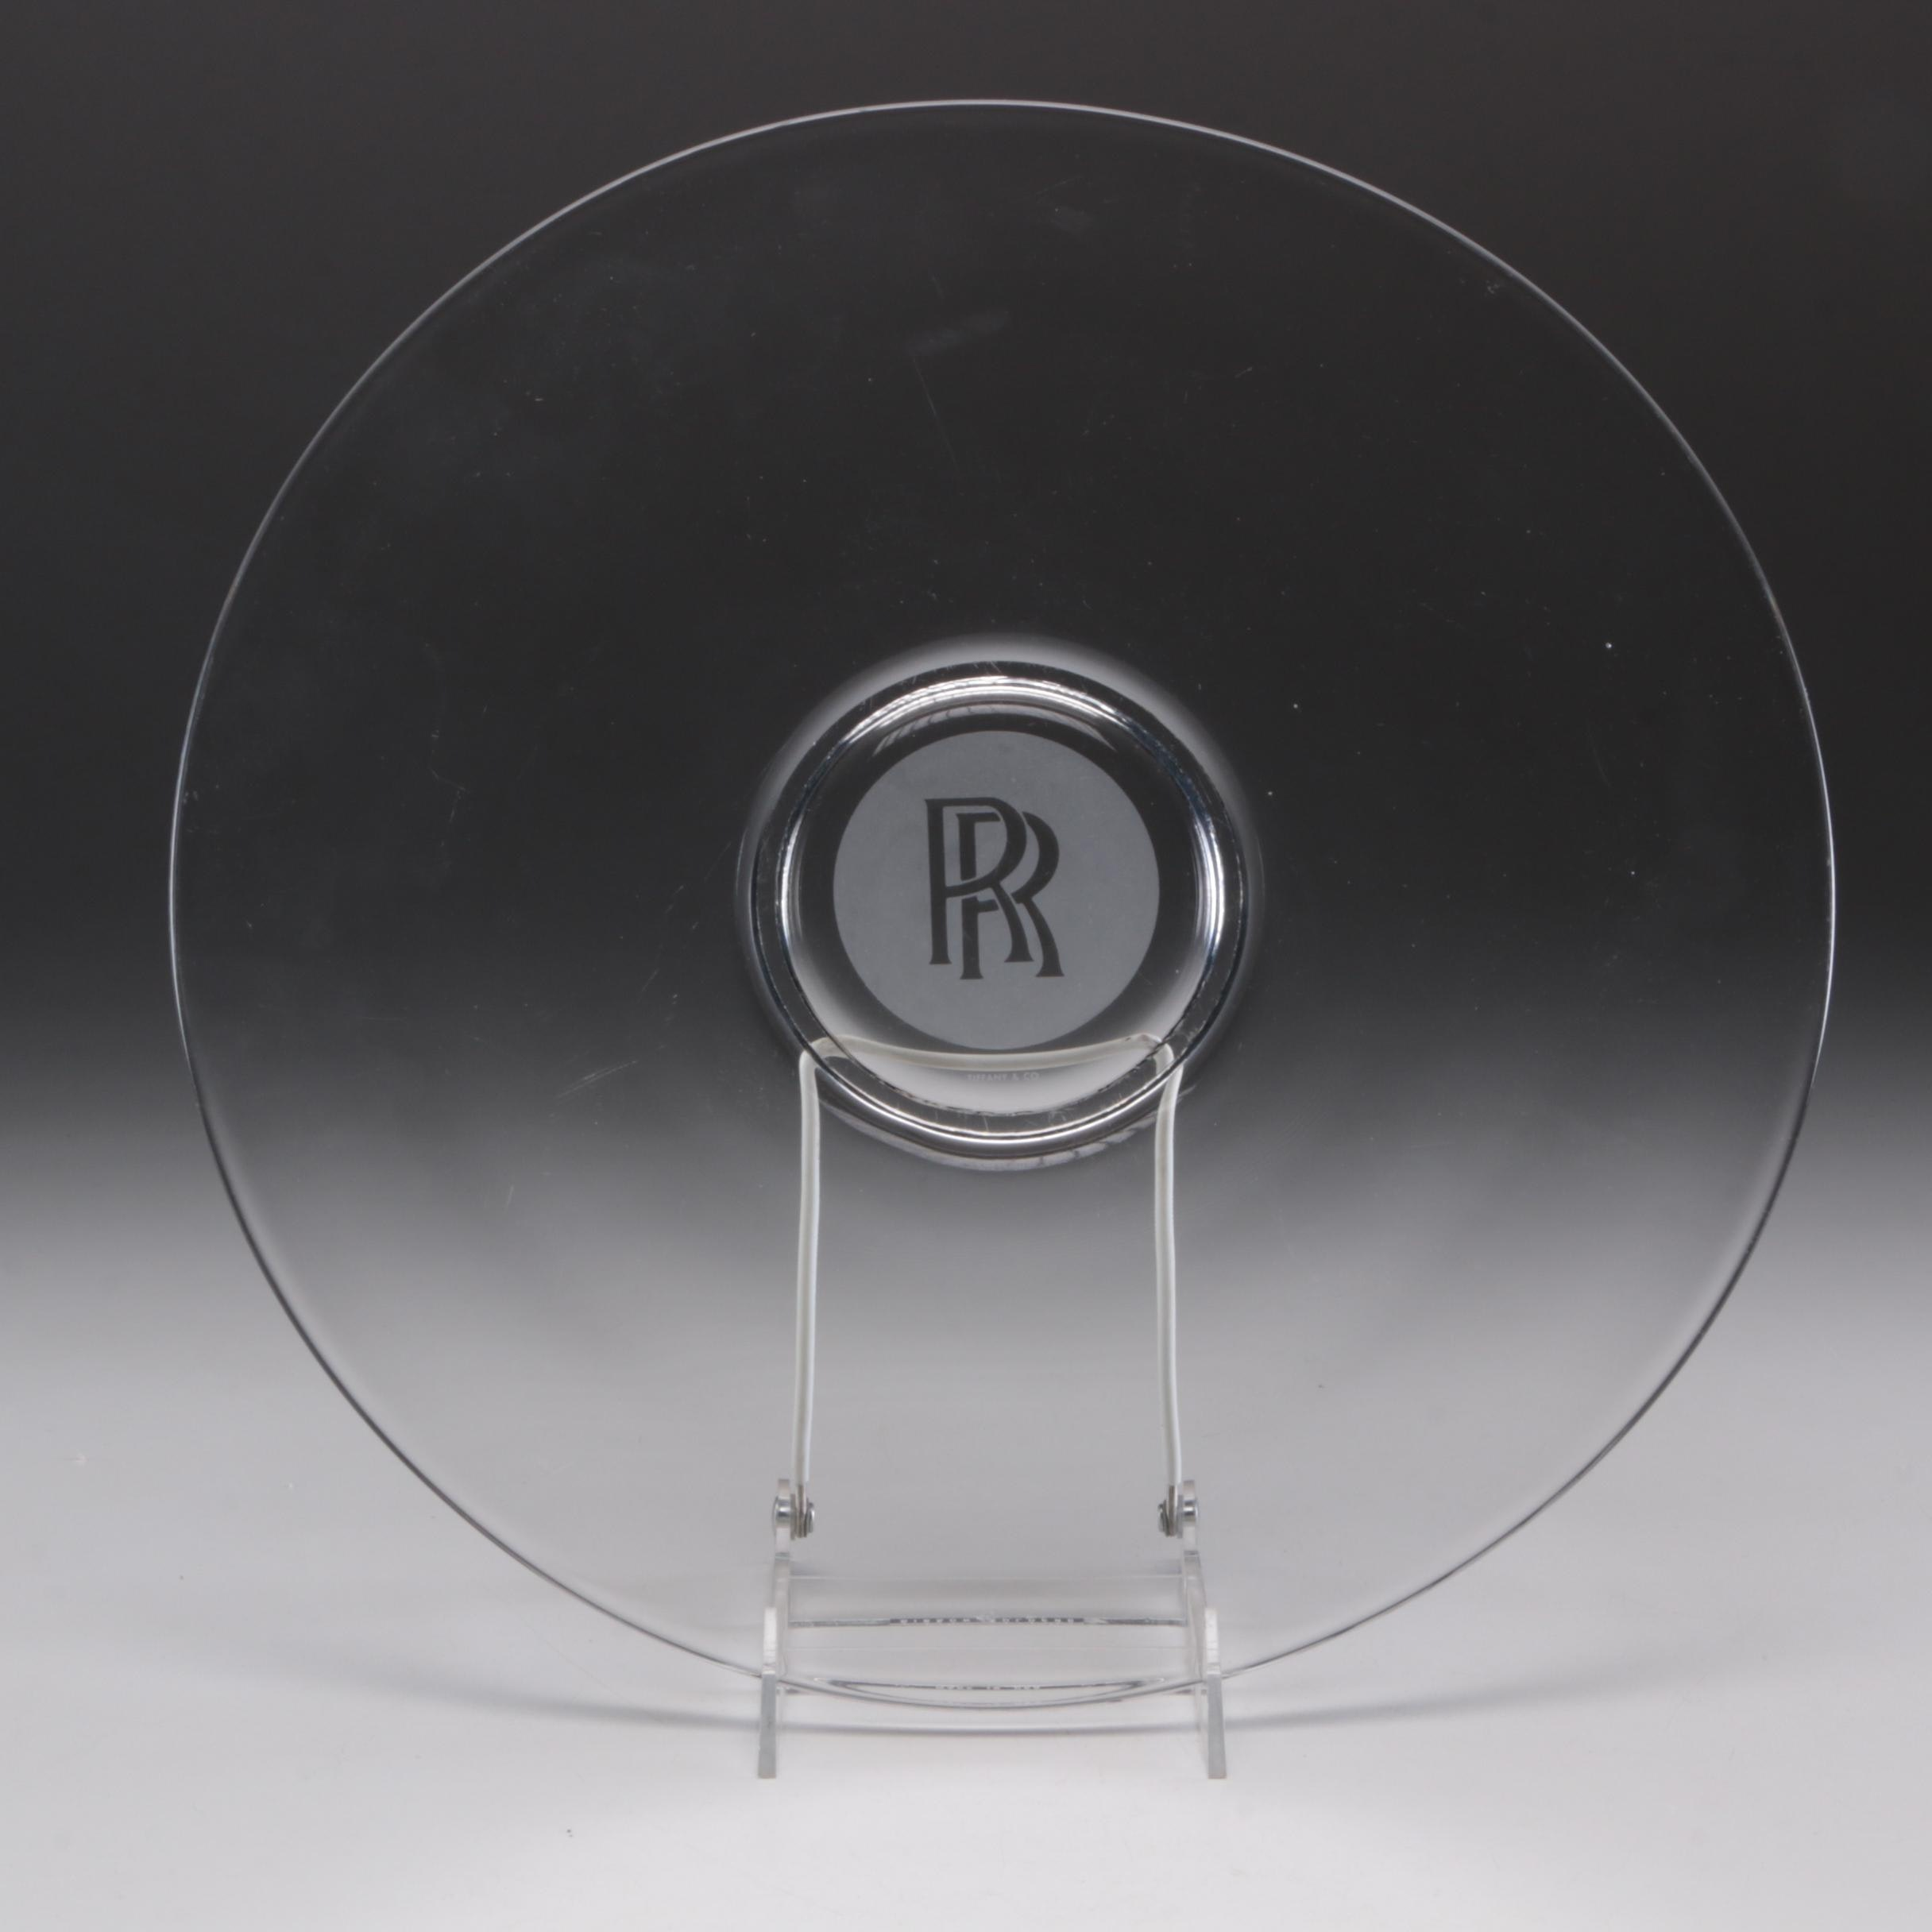 Tiffany & Co. Rolls-Royce Serving Glass Plate or Tray with Etched Logo